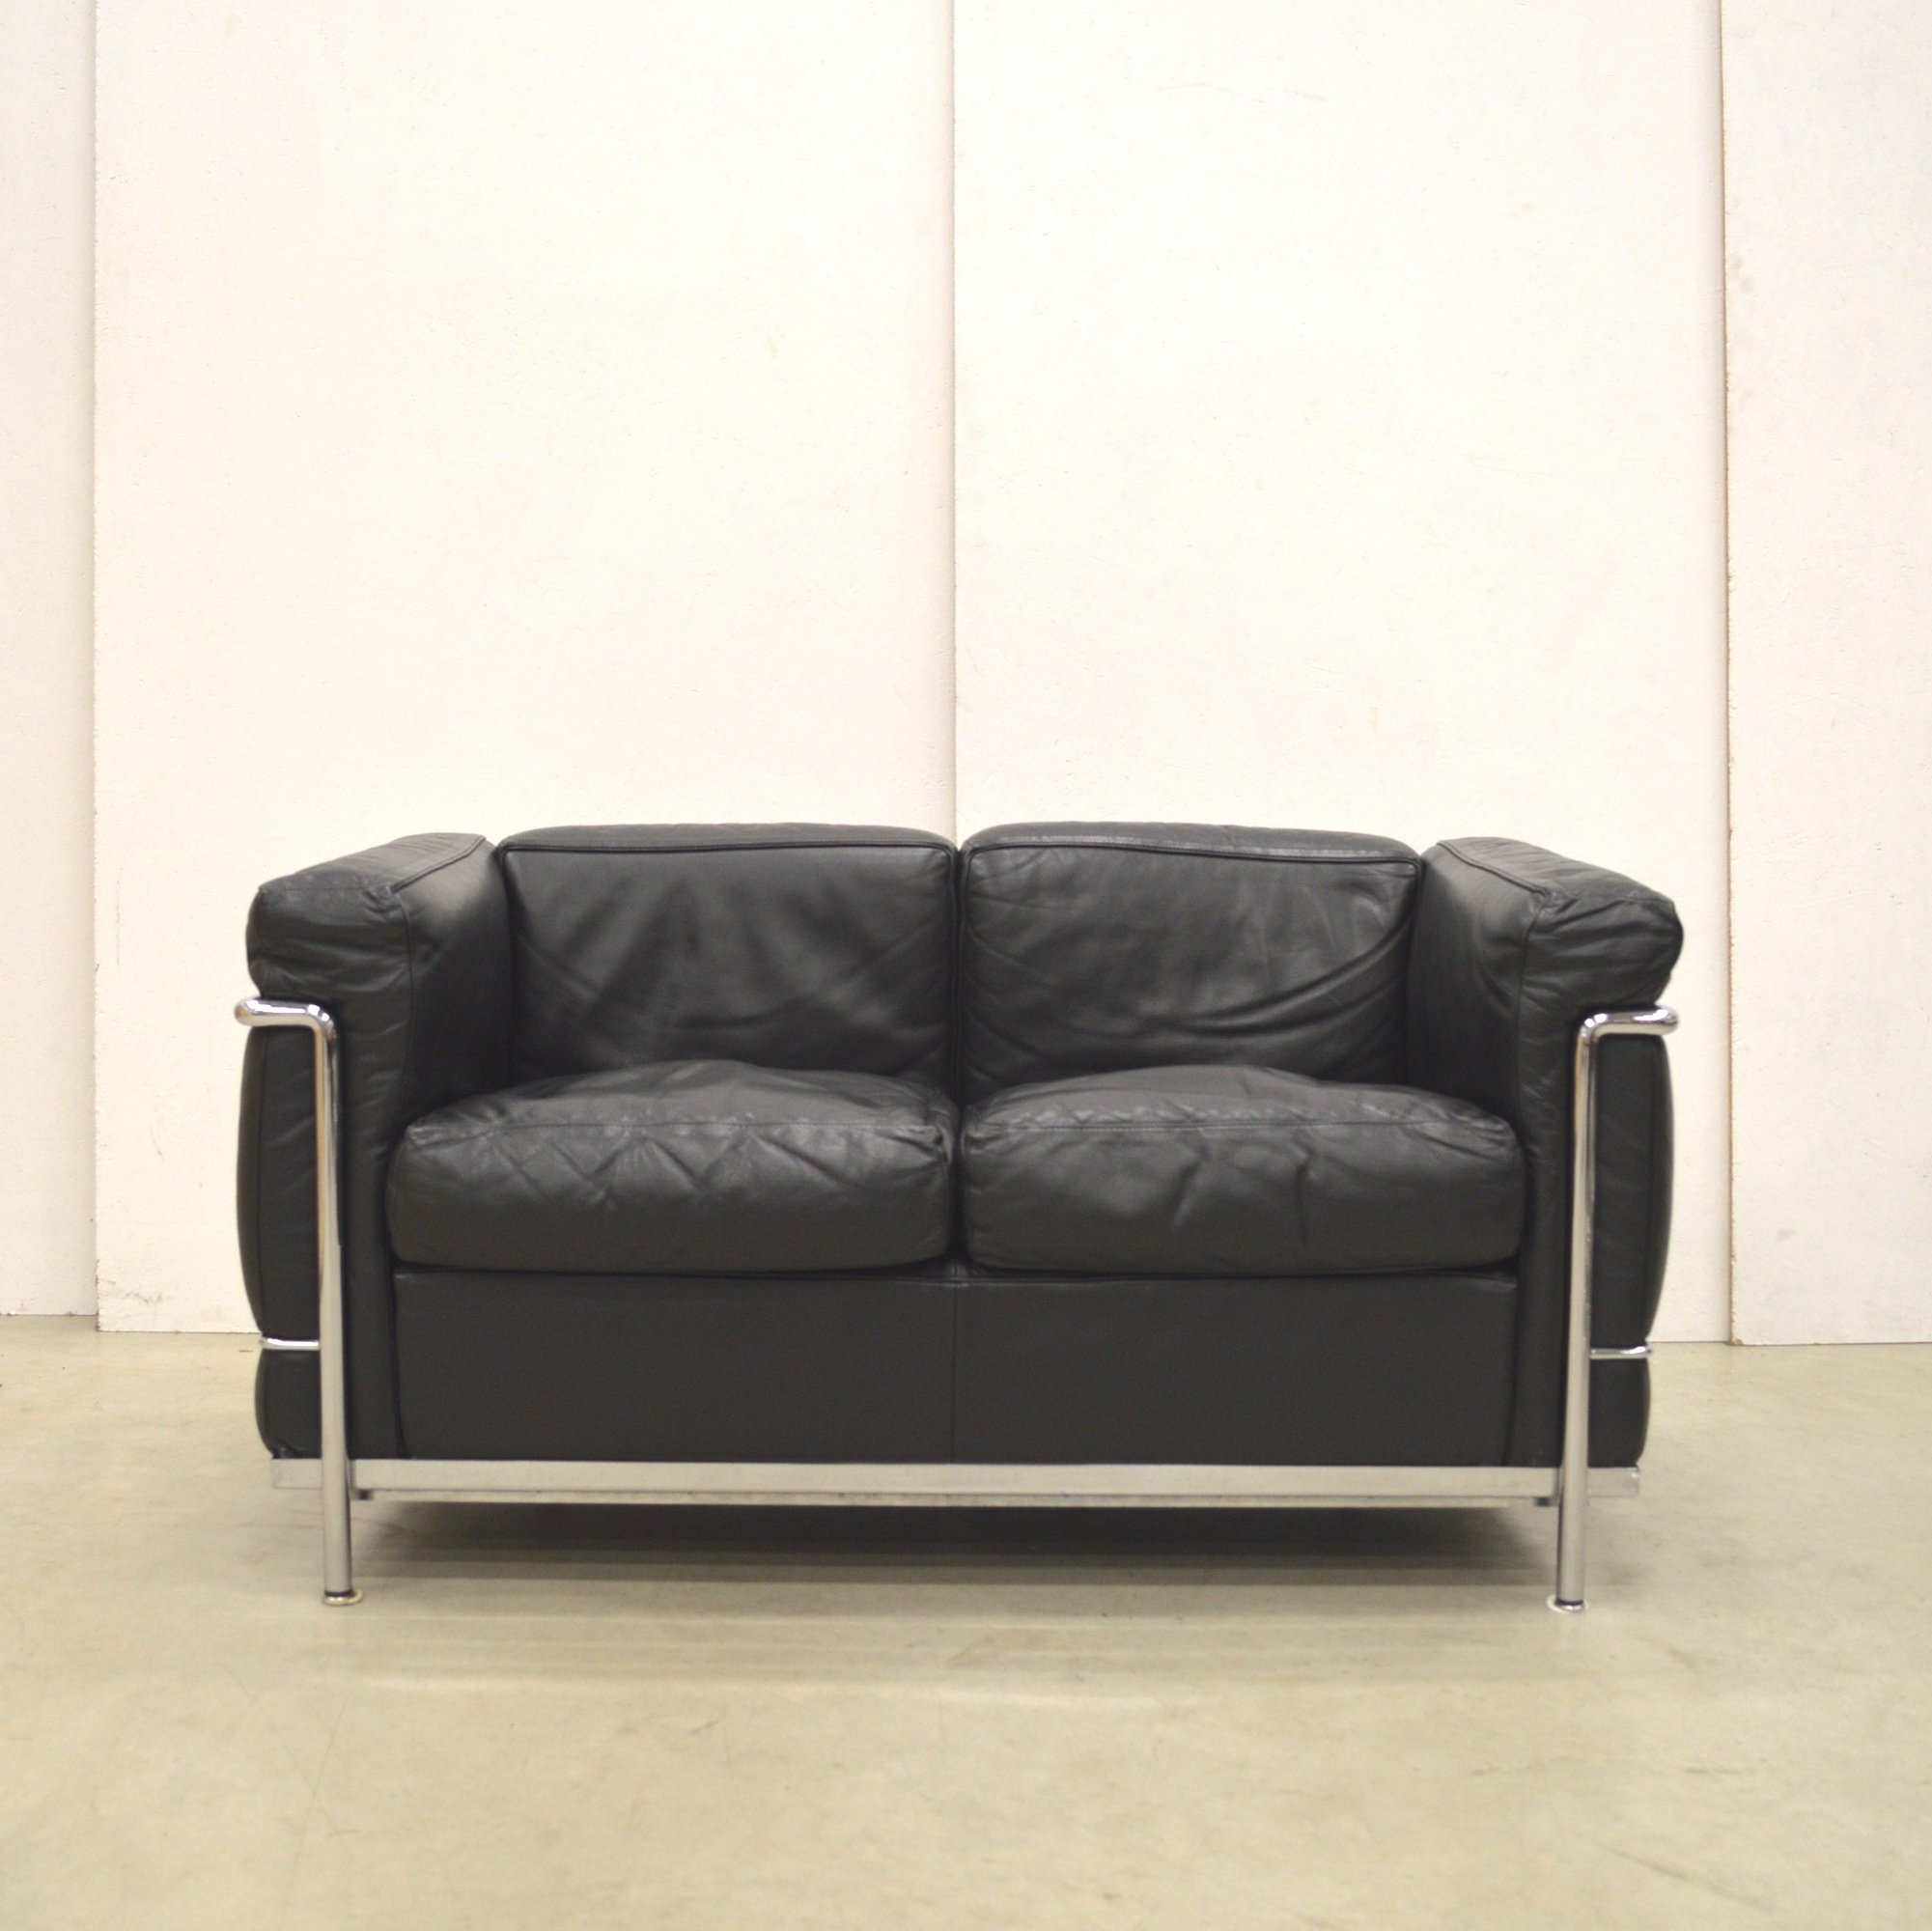 LC2 Sofa By Le Corbusier For Cassina, 1990s